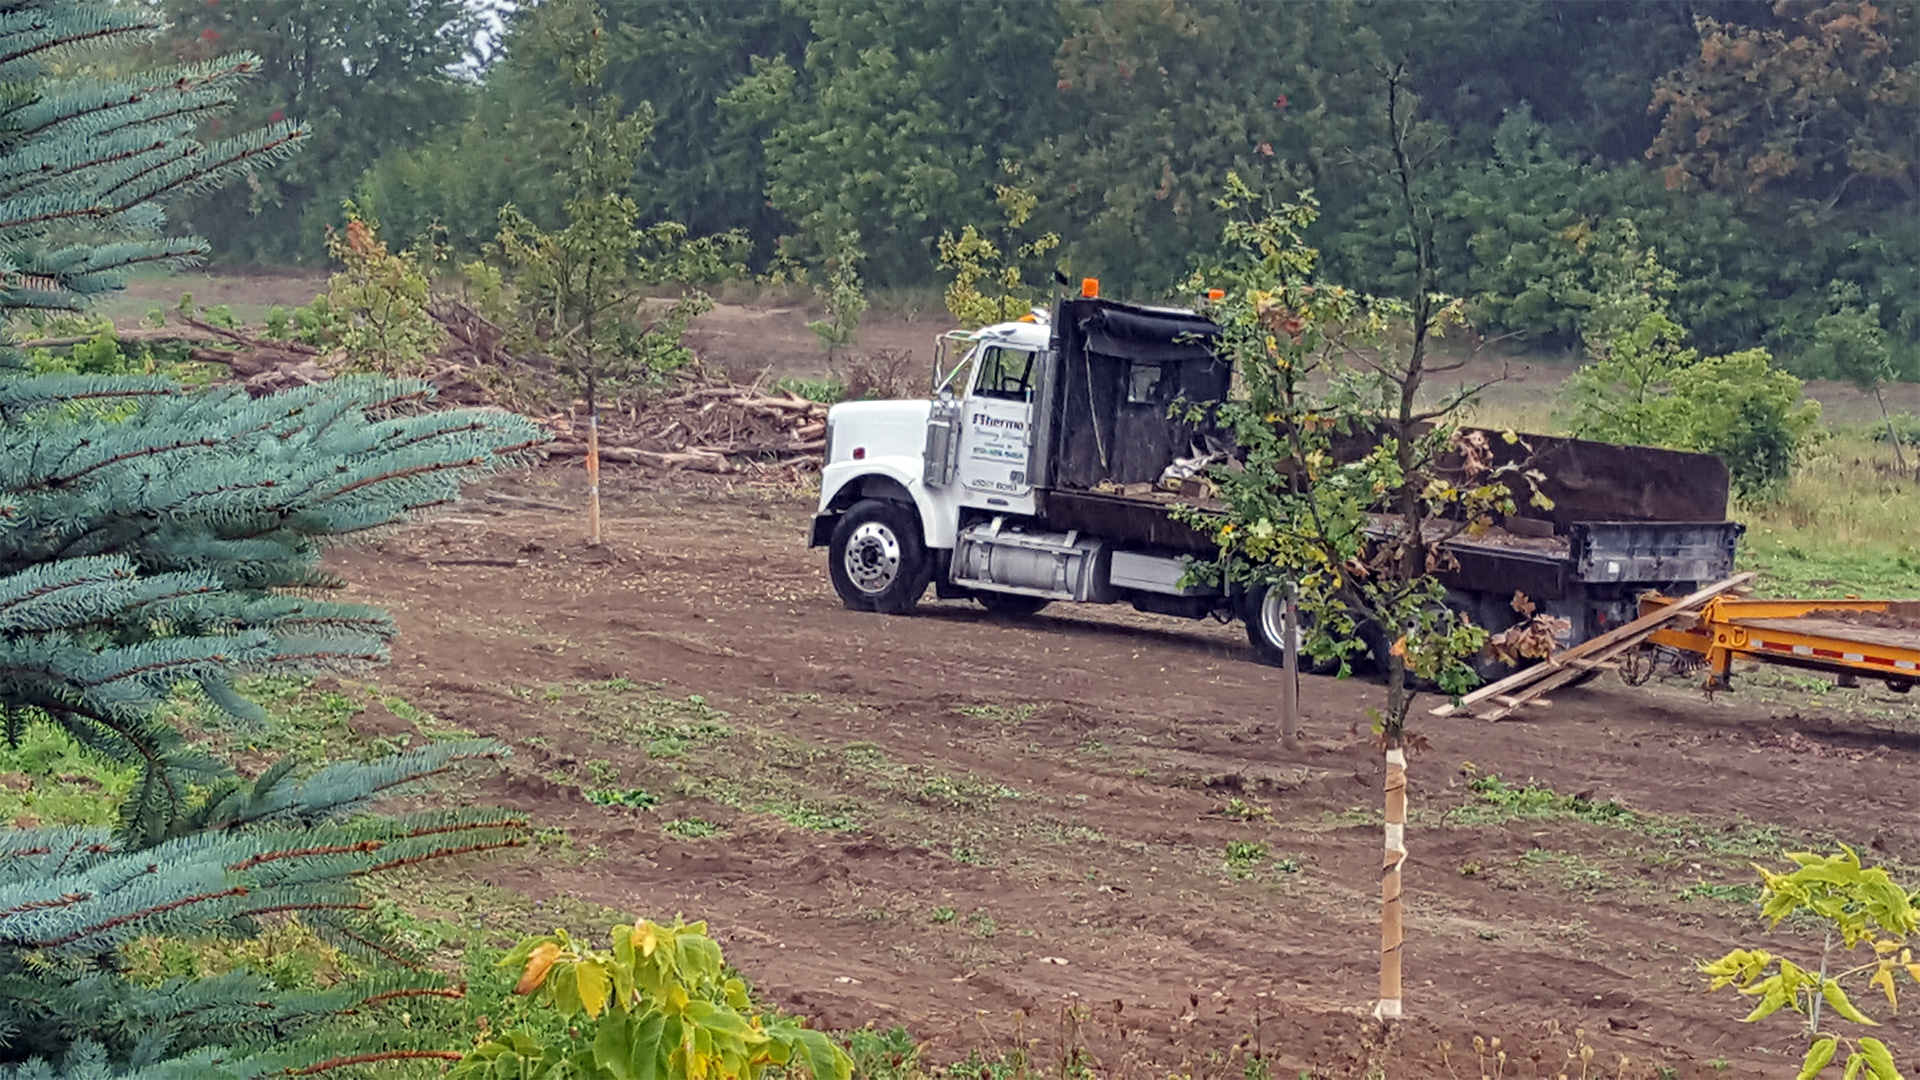 Commercial Landscaping truck